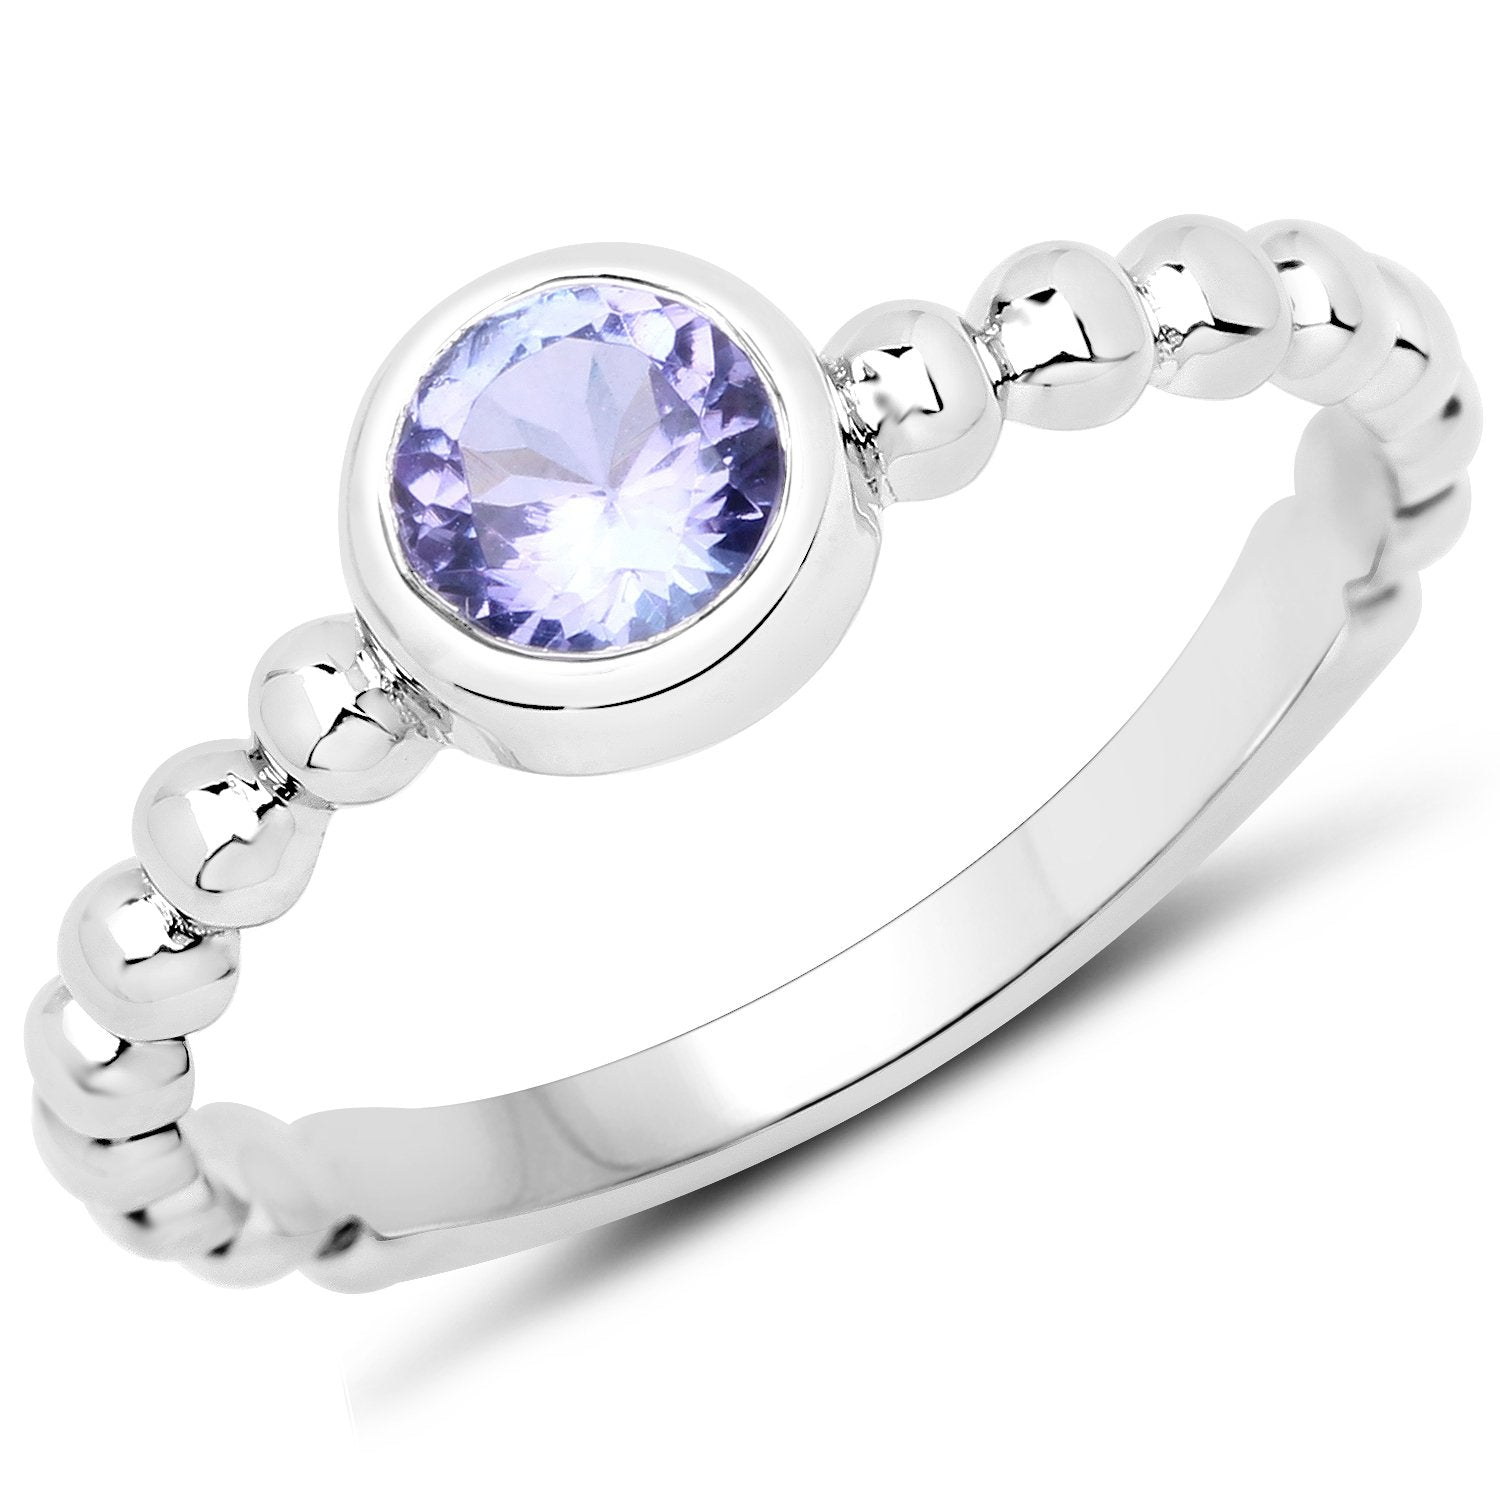 LoveHuang 0.42 Carats Genuine Tanzanite Stacking Ring Solid .925 Sterling Silver With Rhodium Plating